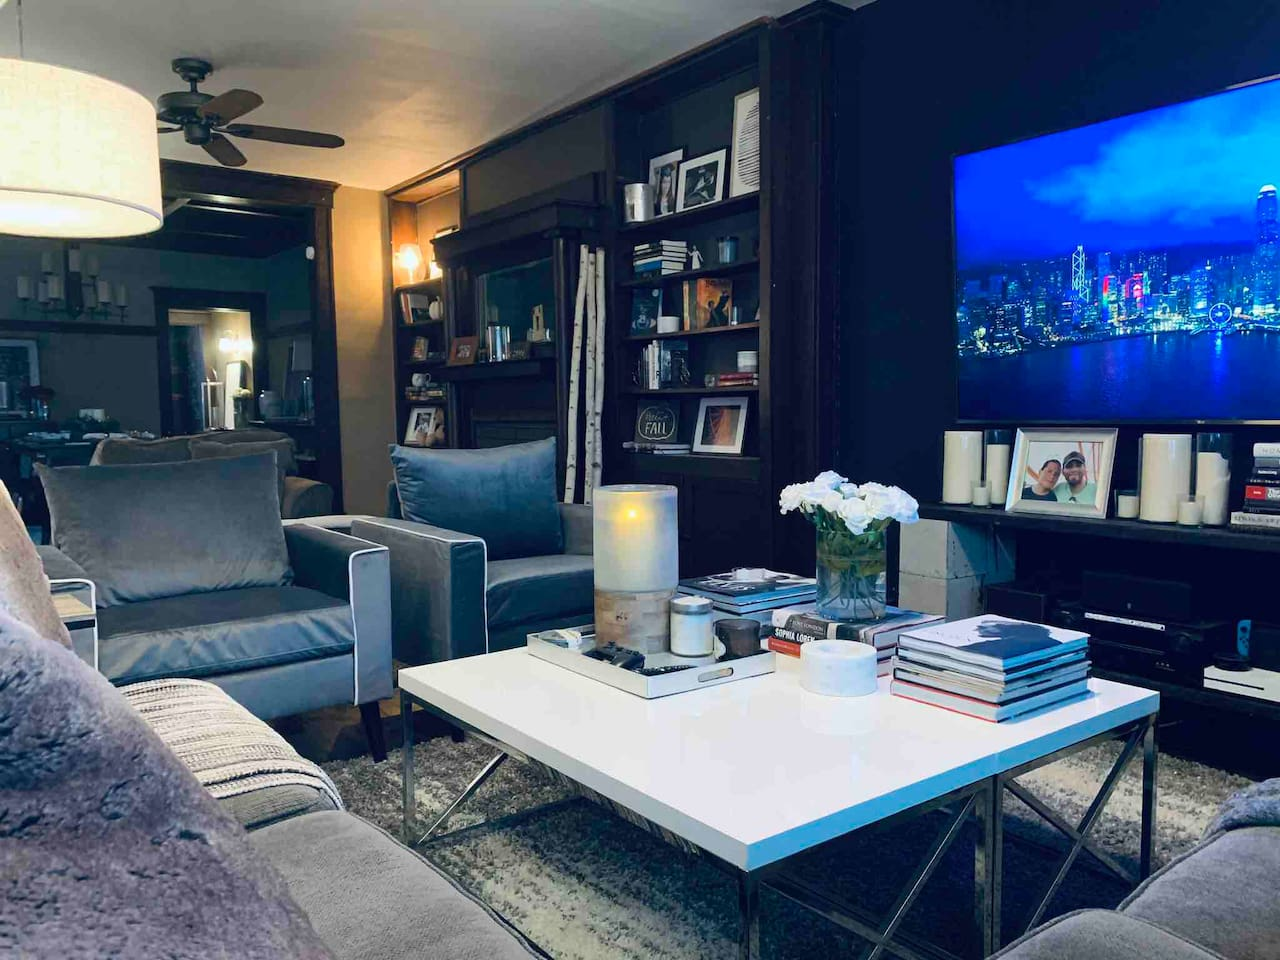 Cozy and modern style livingroom with a 80 inch 4K oled hdr tv with all the current generation game consoles and streaming services provides from Netflix,HULU, amazon instant,HBO all the movie and tv channels and access to hundreds of 4K movies!